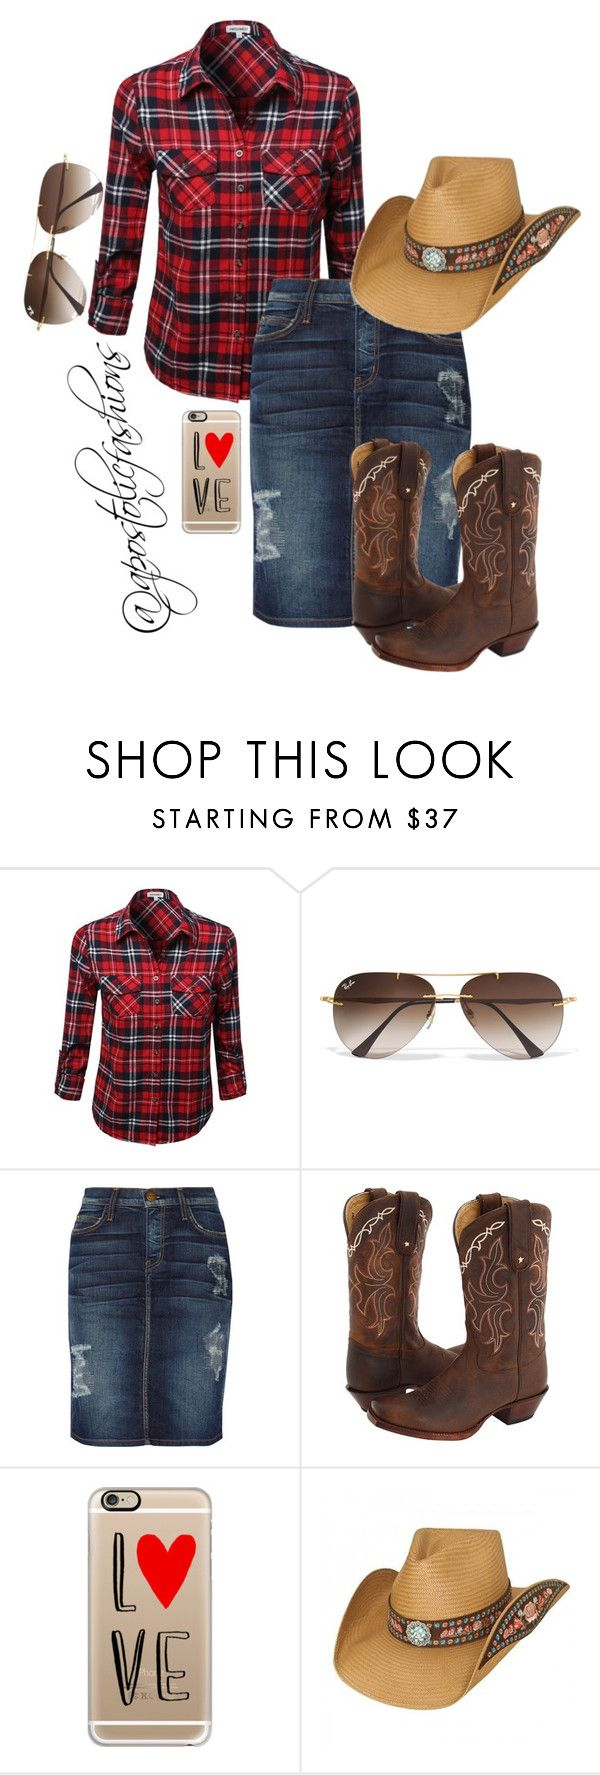 """Apostolic Fashions #1104"" by apostolicfashions ❤ liked on Polyvore featuring Ray-Ban, Current/Elliott, Tony Lama, Casetify, women's clothing, women, female, woman, misses and juniors"